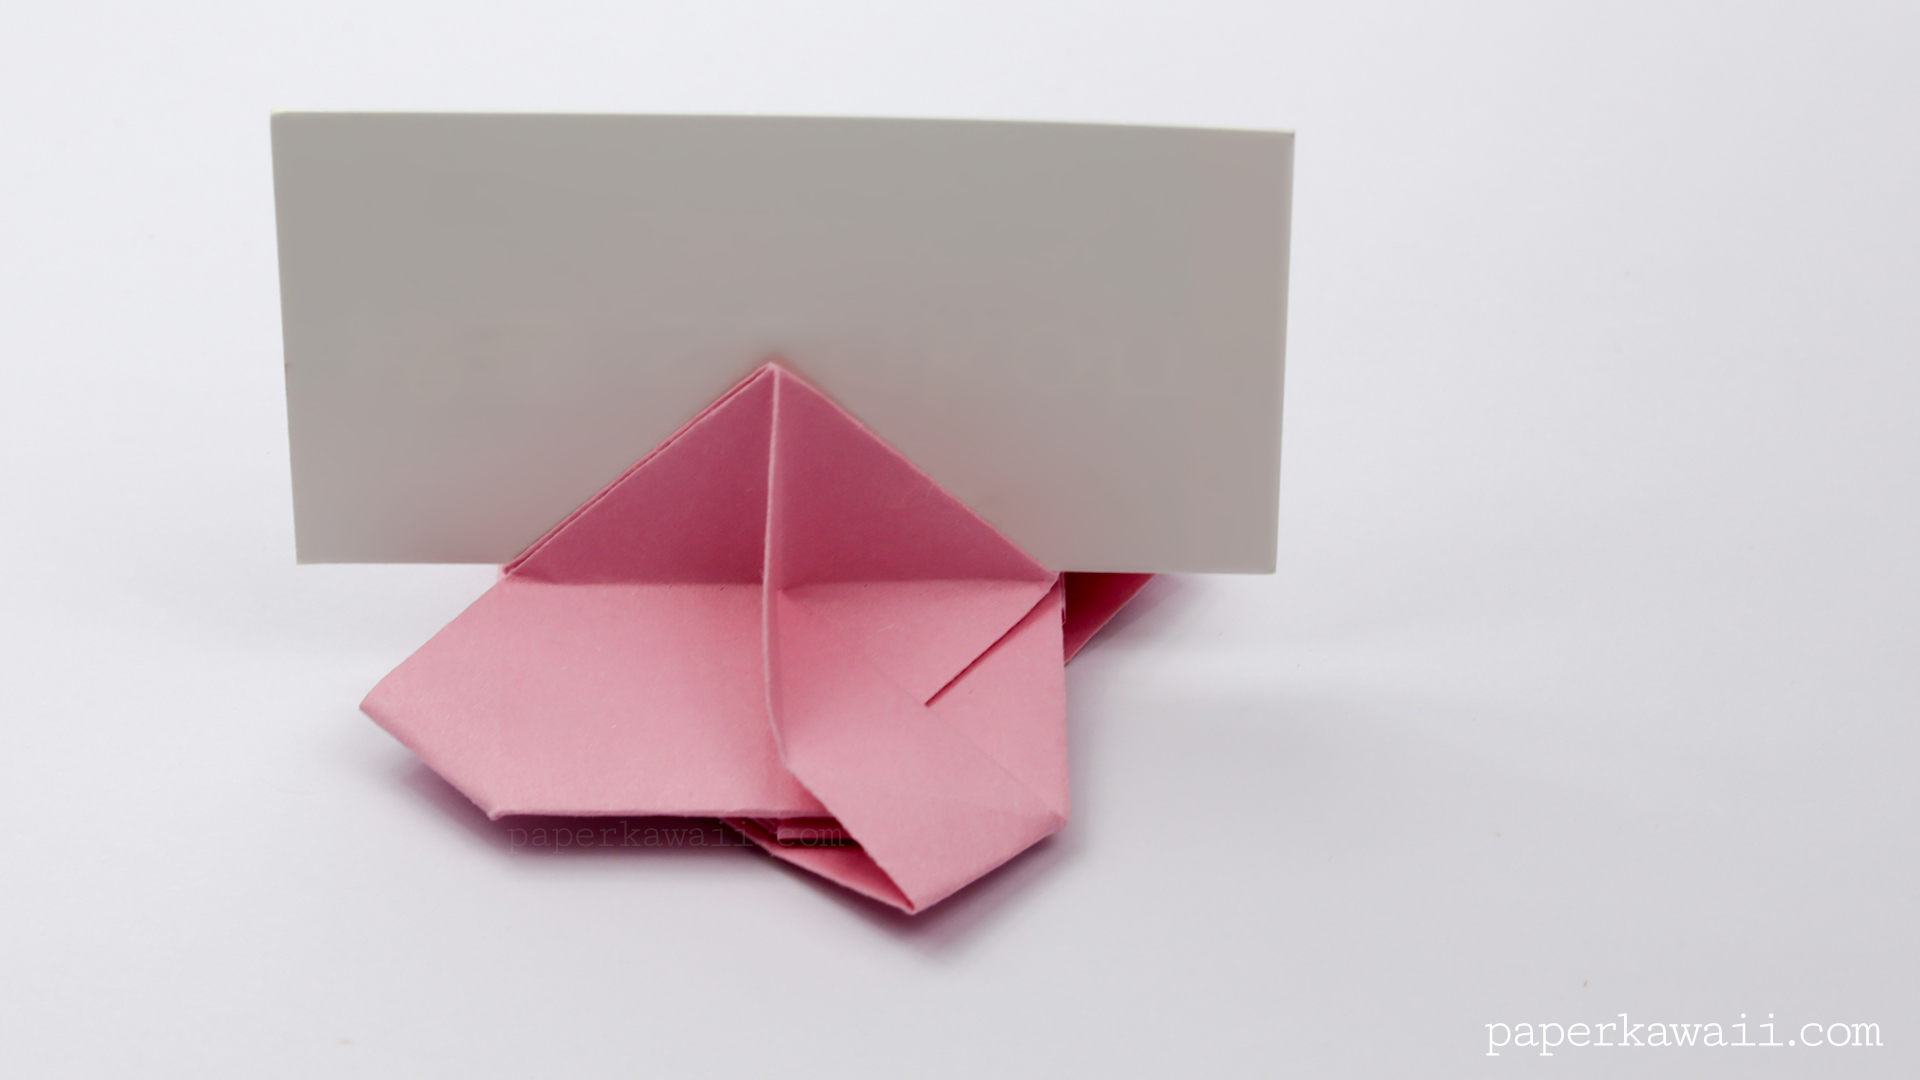 Origami Card Holder Instructions - Paper Kawaii - photo#45